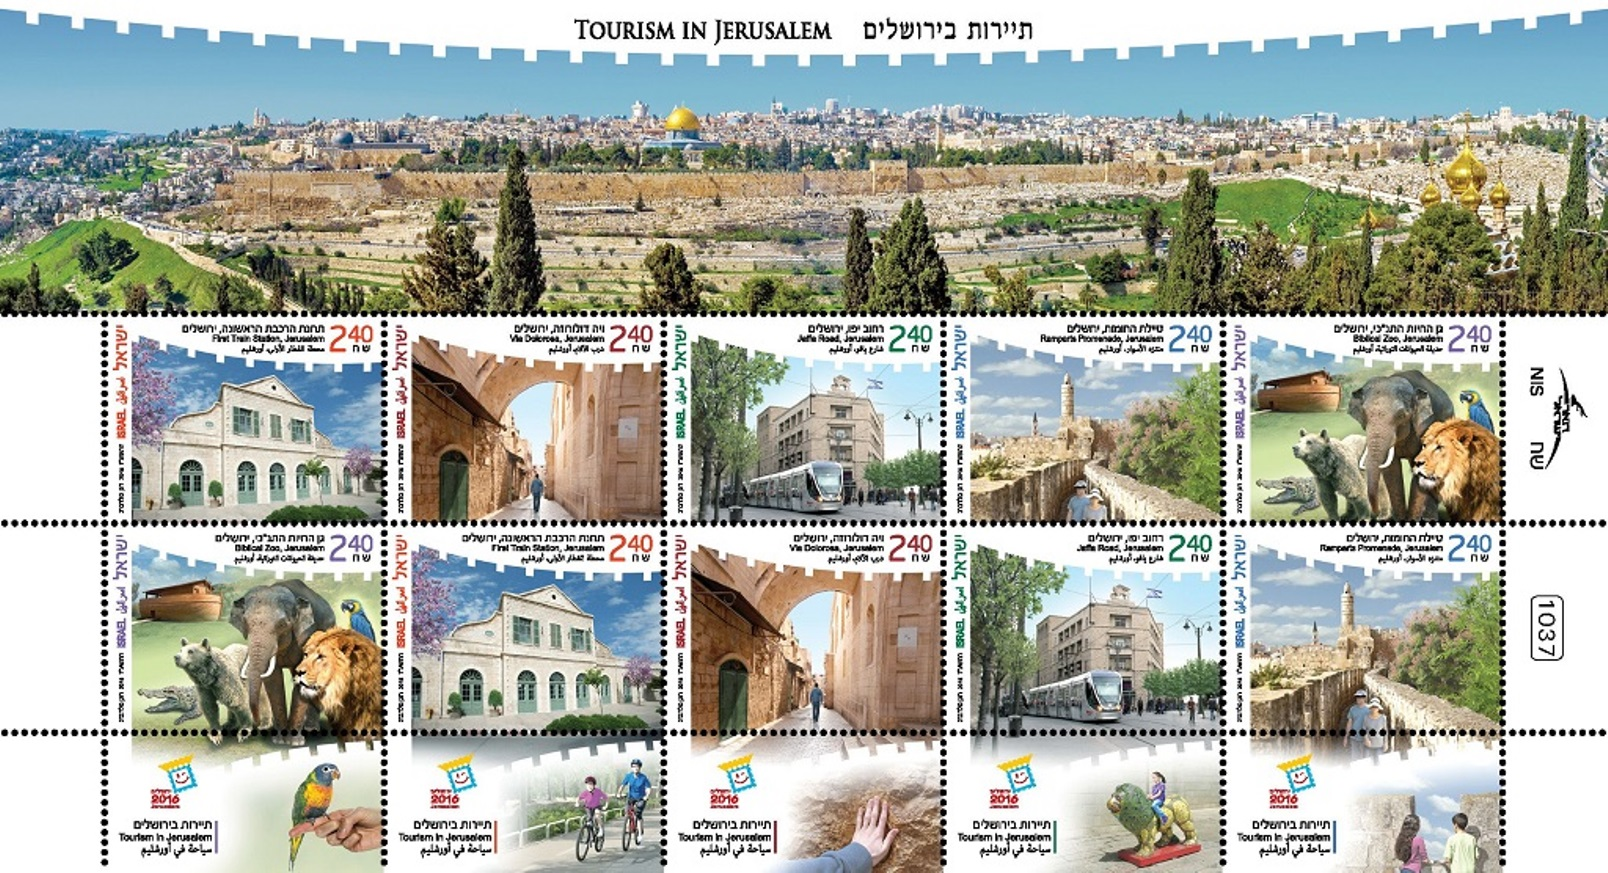 Jerusalem tourism stamp sheet issued in November 2016. Image courtesy of Israel Post